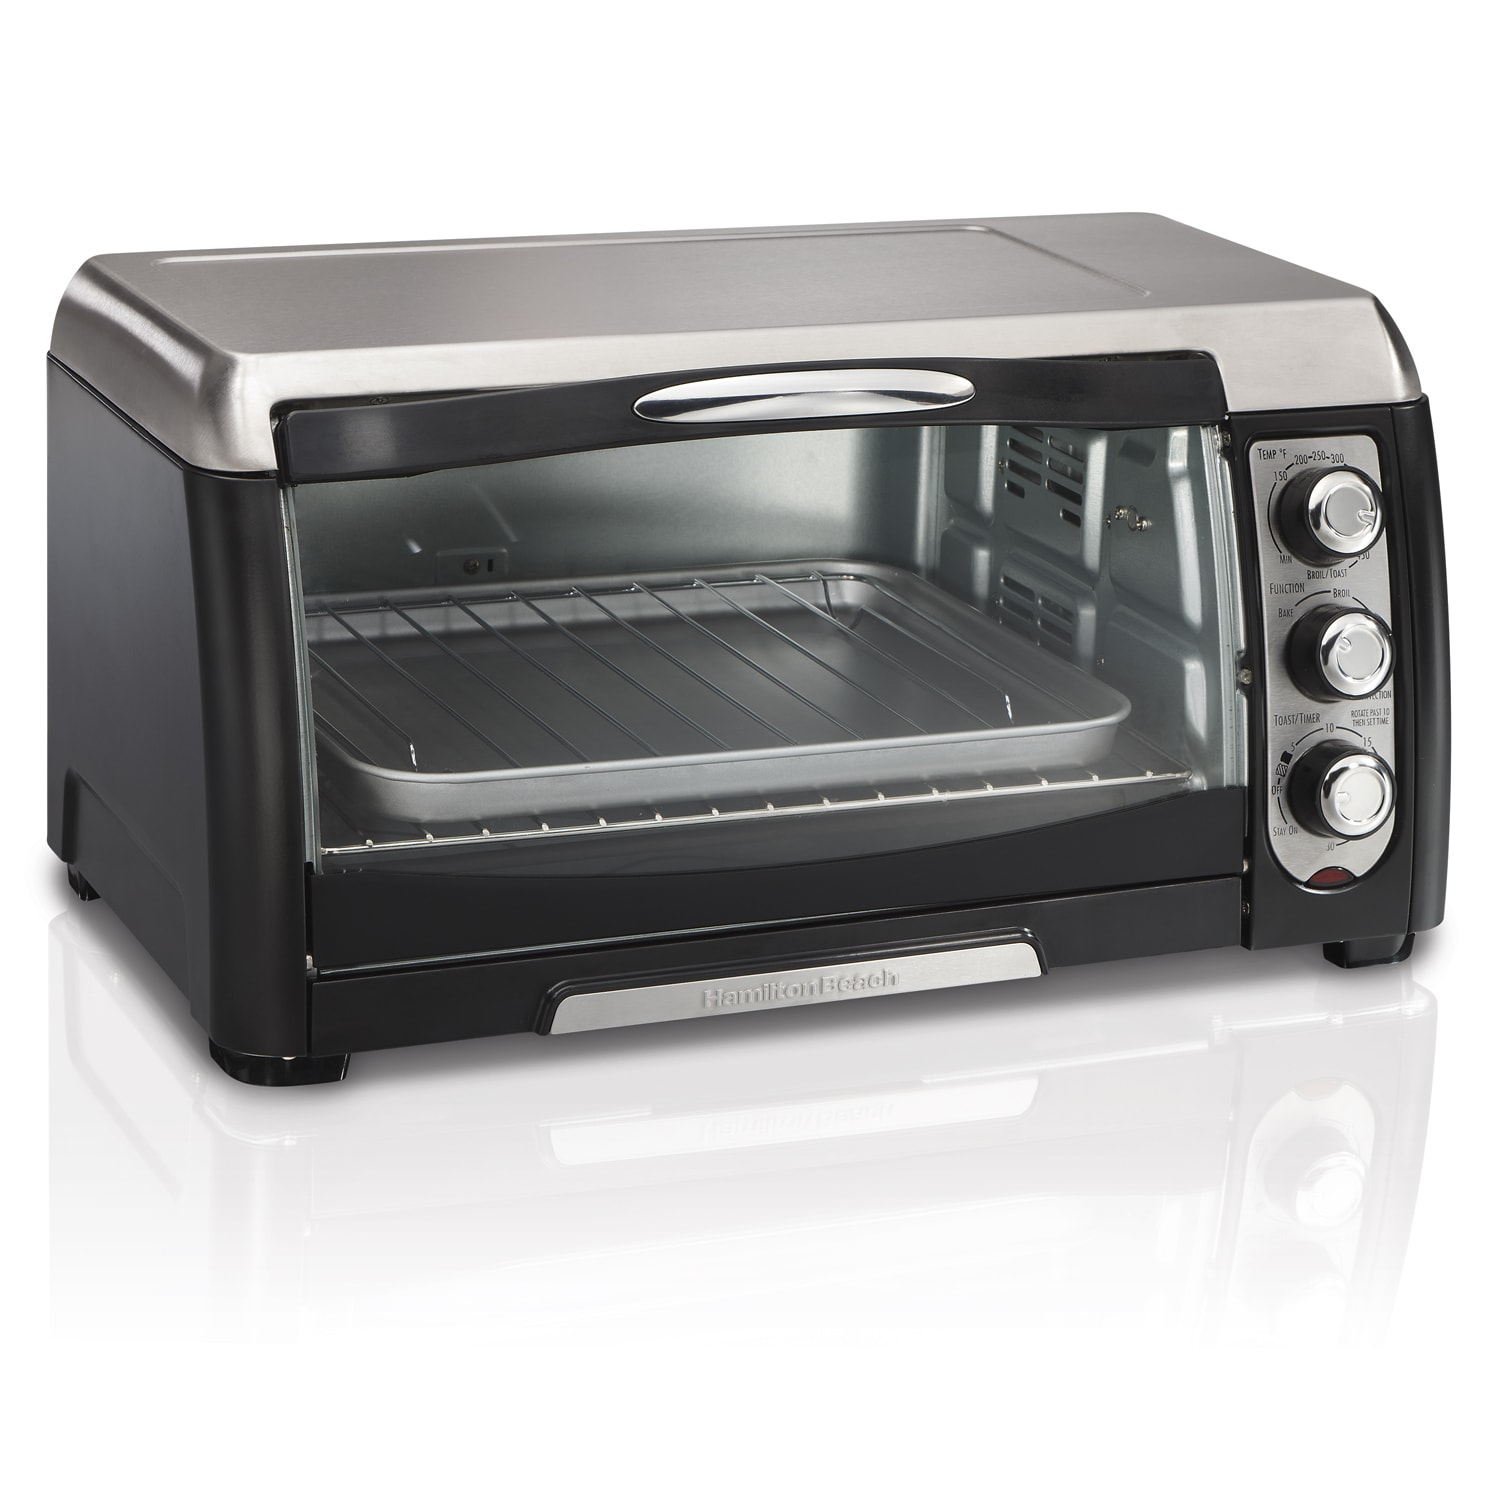 countertop s slice spectrum oven convection p steel ebay black brands decker toaster stainless